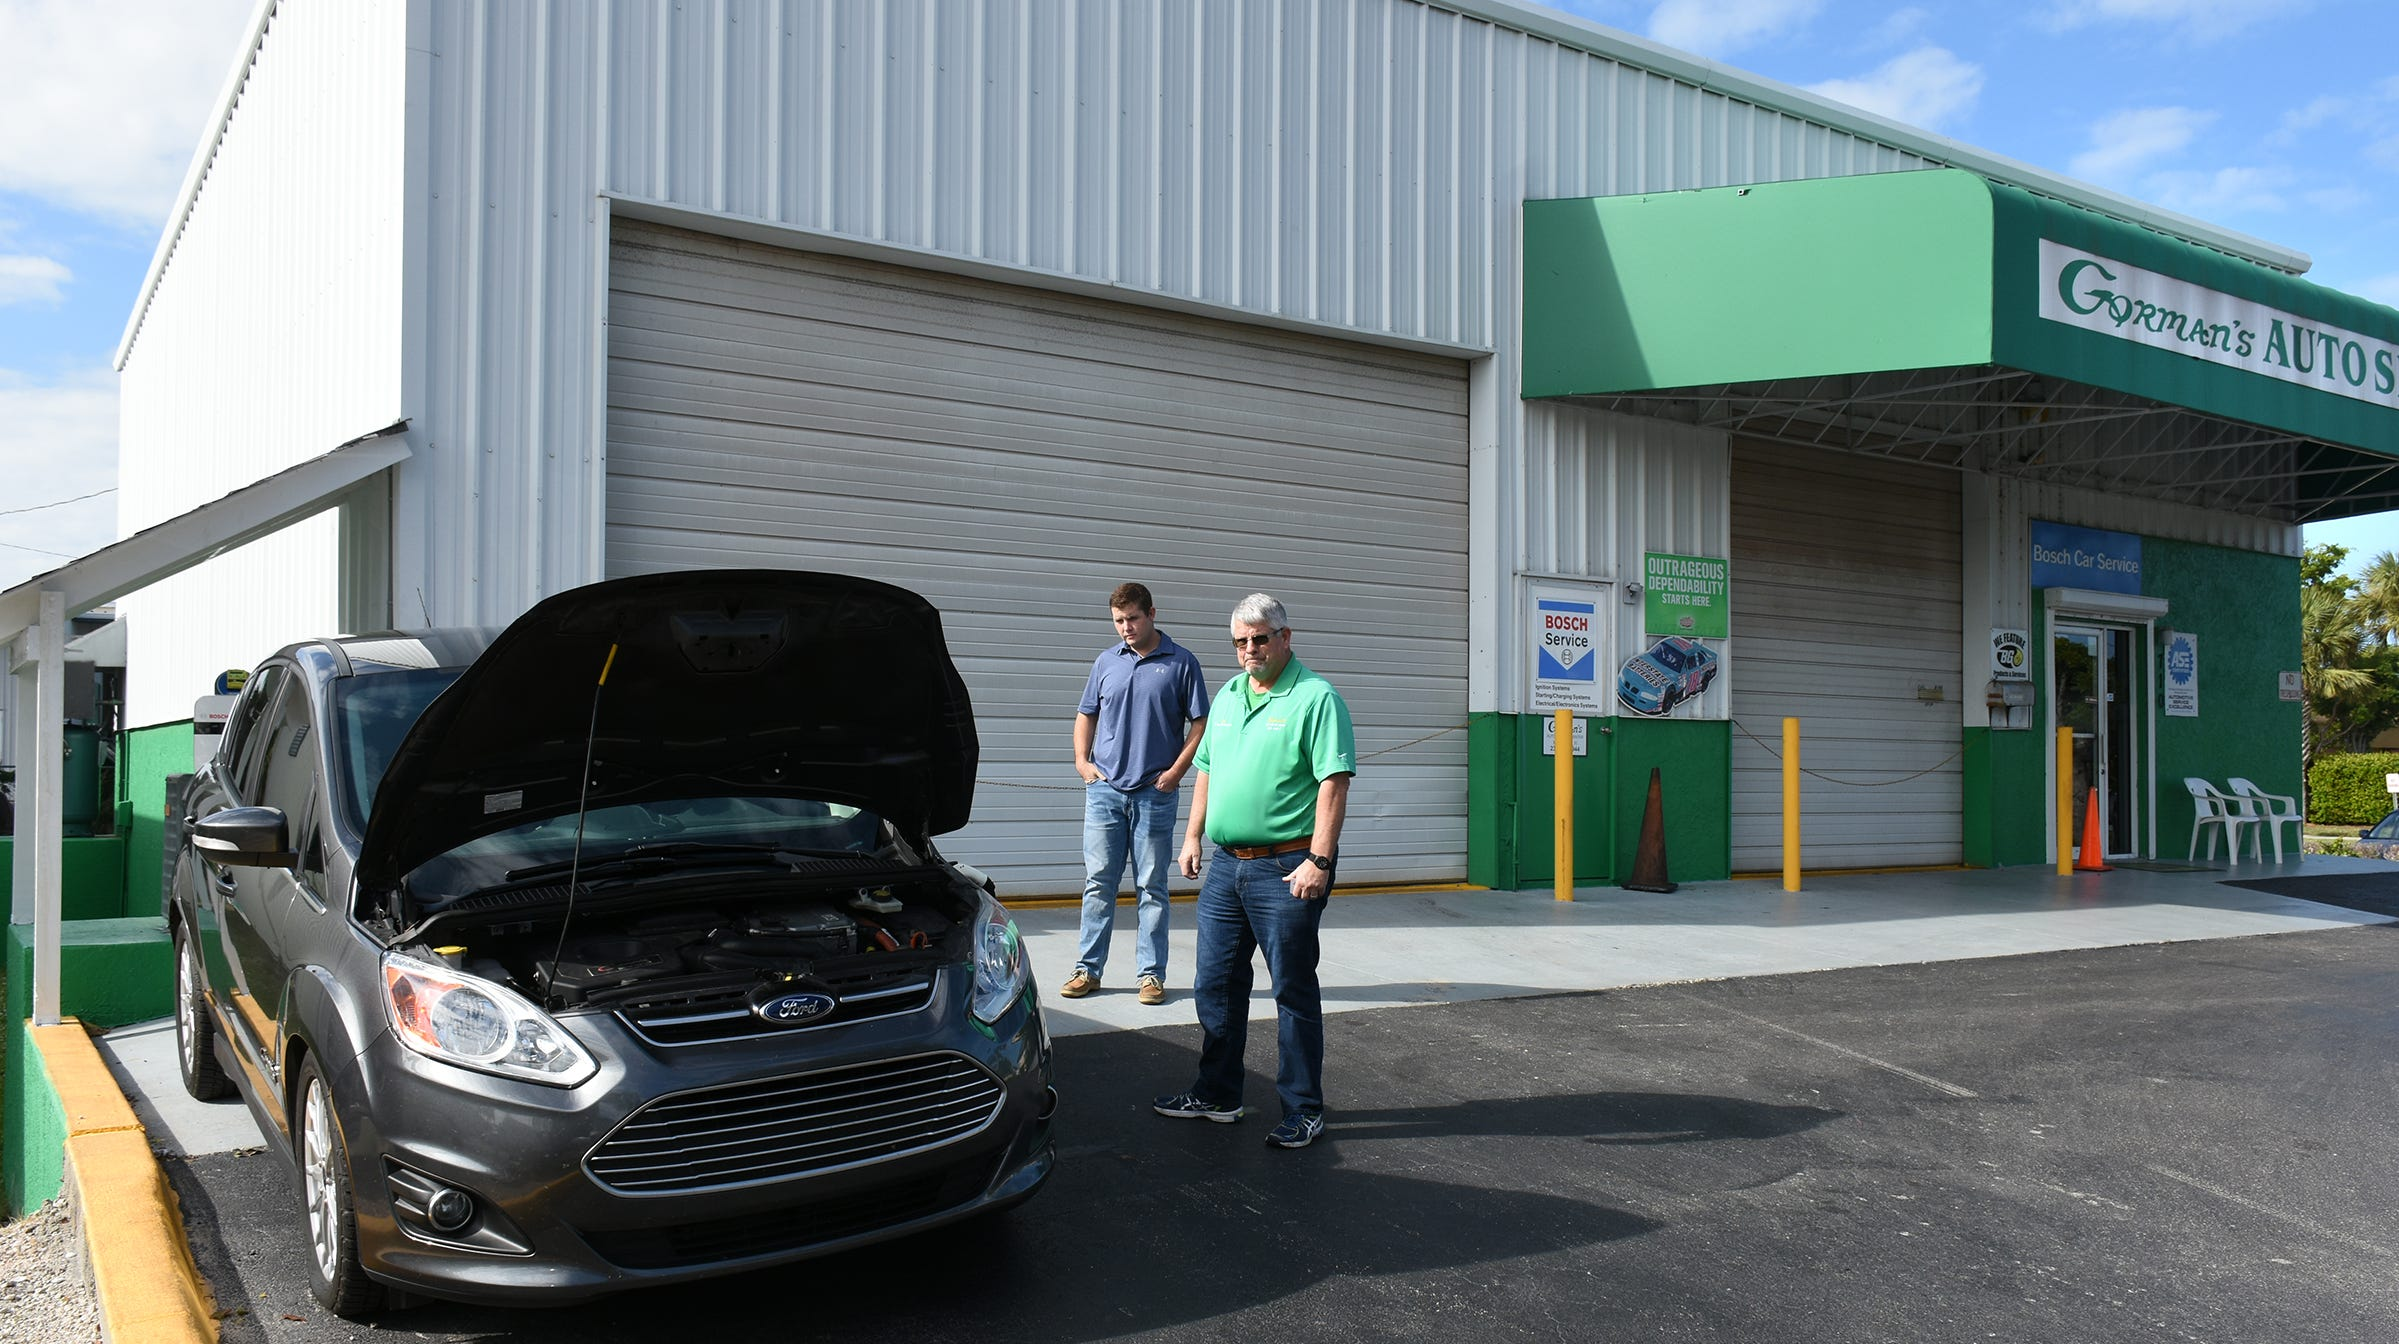 Father and son, Tim and Sean Gorman, watch as a vehicle charges at the charging station they installed Gorman's Auto Service on Marco Island.